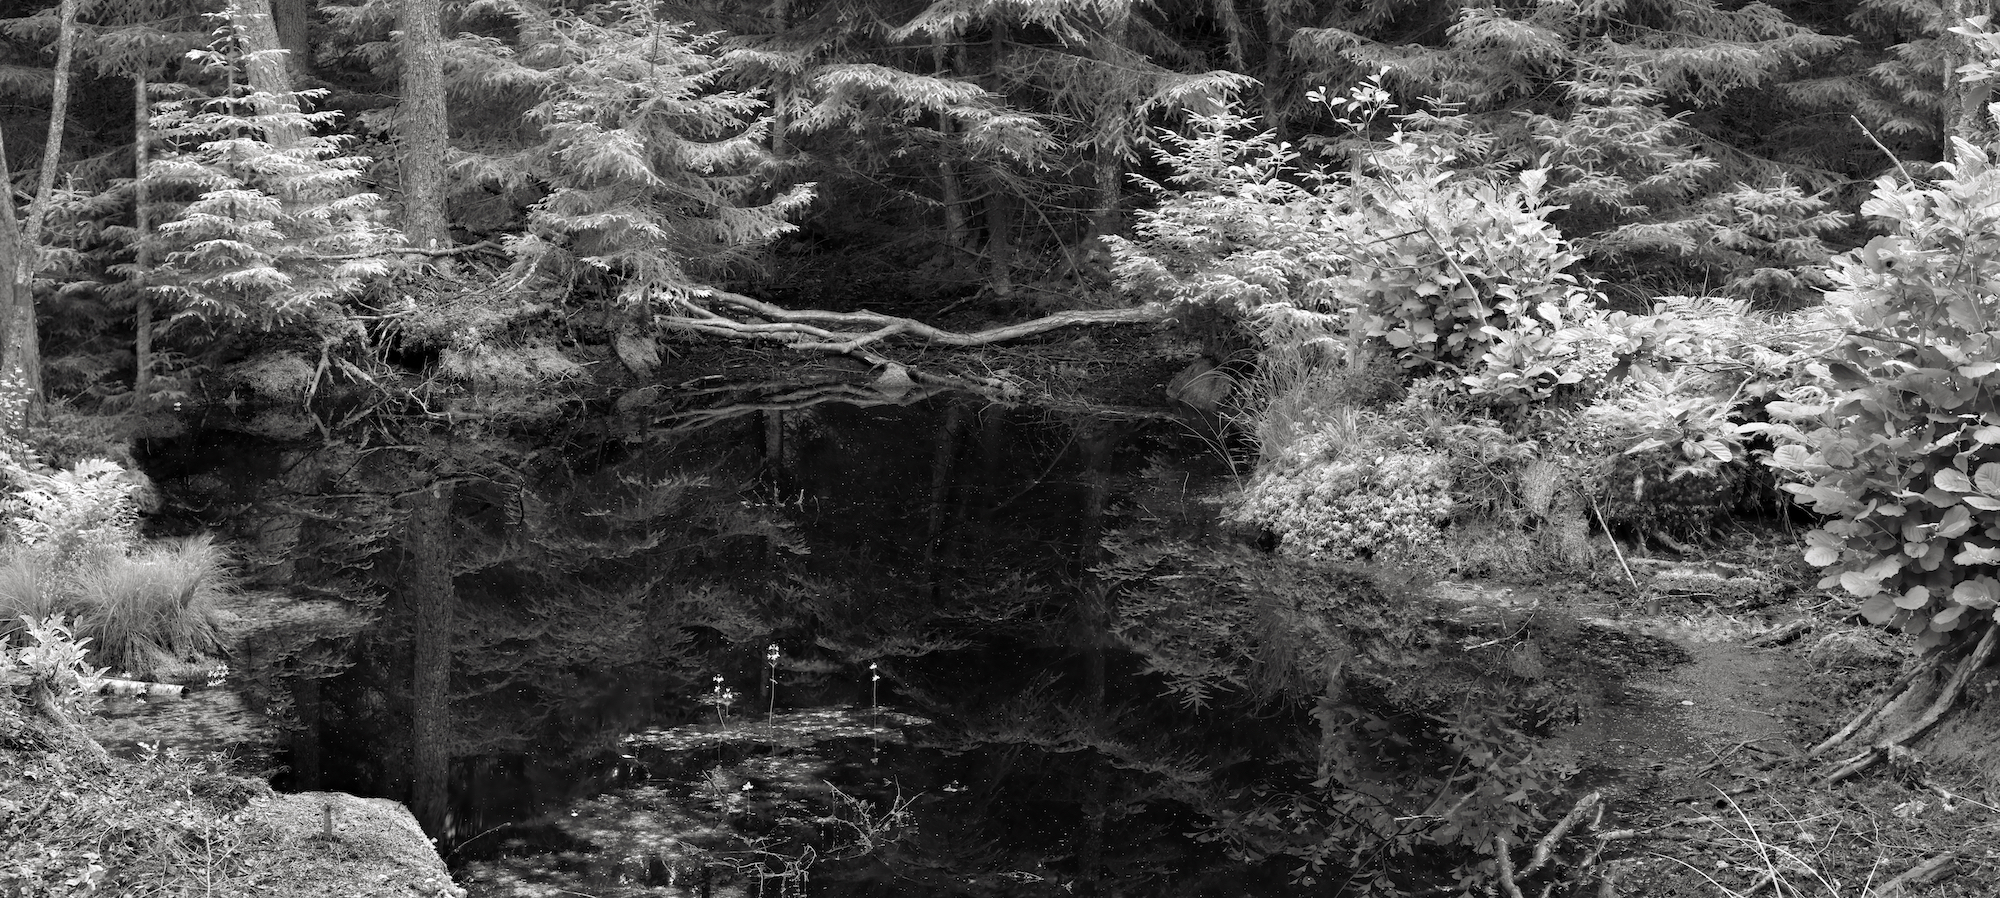 Forest, 2020, Silver gelatin print mounted on aluminium, museum glass, walnut frame, 88 x 193,5 cm, edition of 5